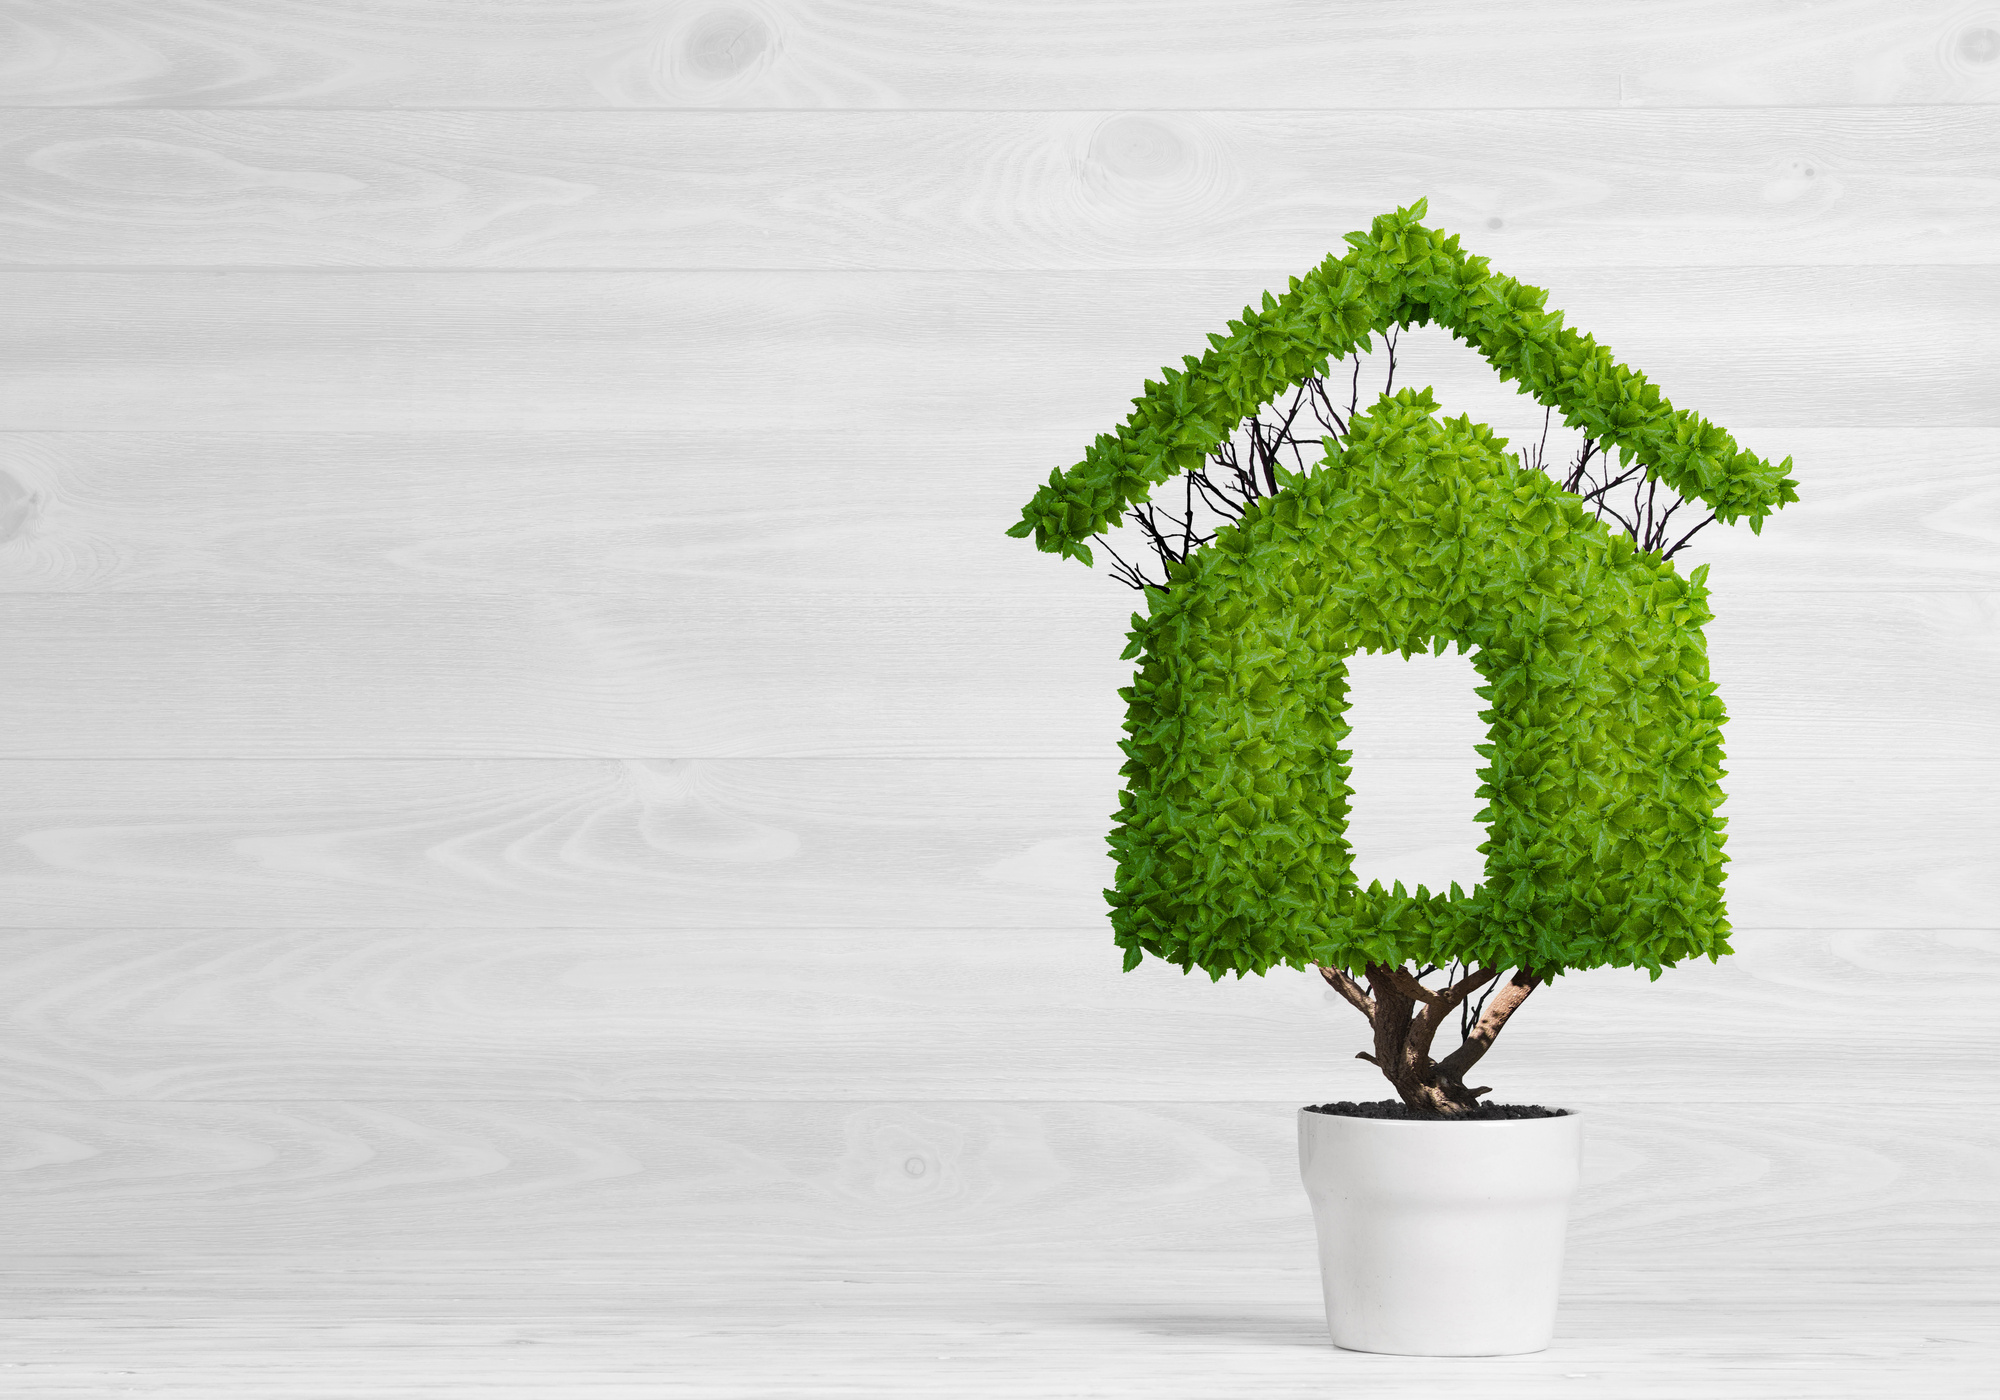 Green Home Design in 2019: 8 Eco-Friendly House Ideas You Need to ...